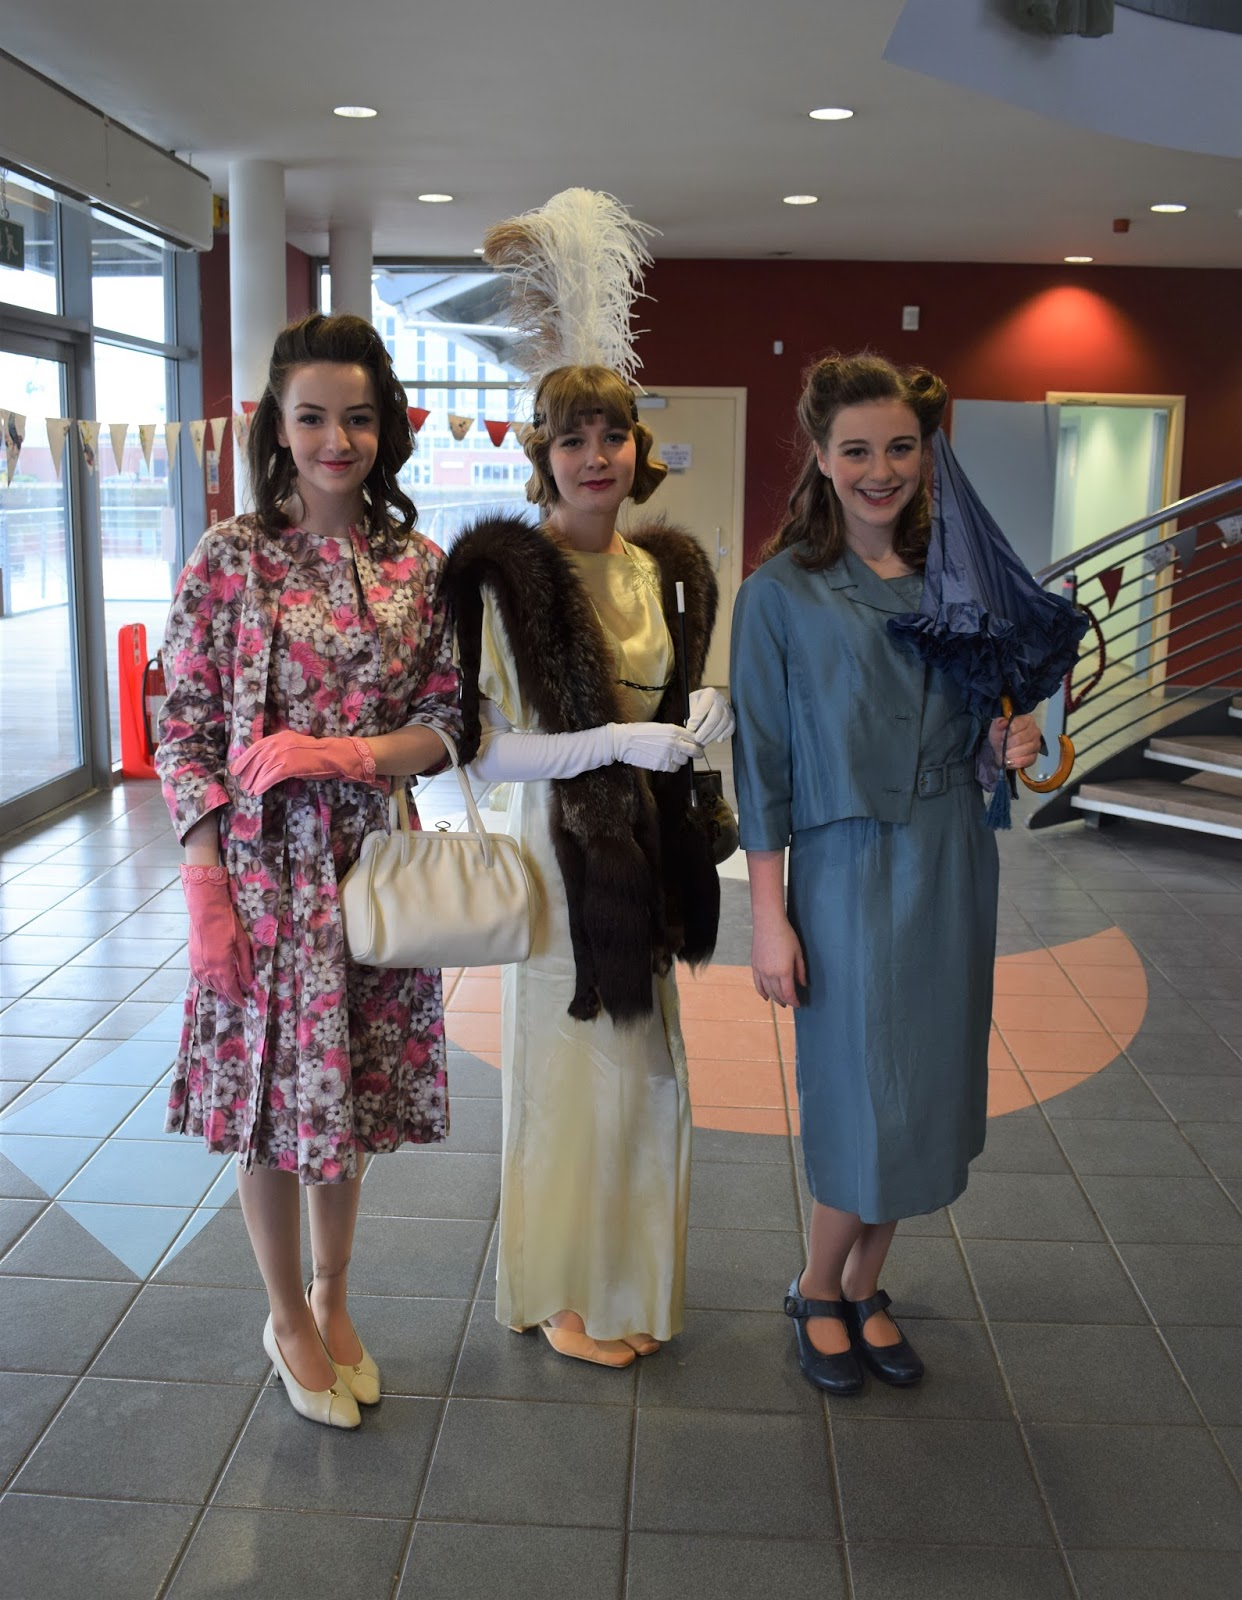 Specifically Vintage market event, The Quay Dundee, charity event Dundee, Vintage afternoon tea and fashion show, 1920s ro 1950 fashions, vintage fashion models